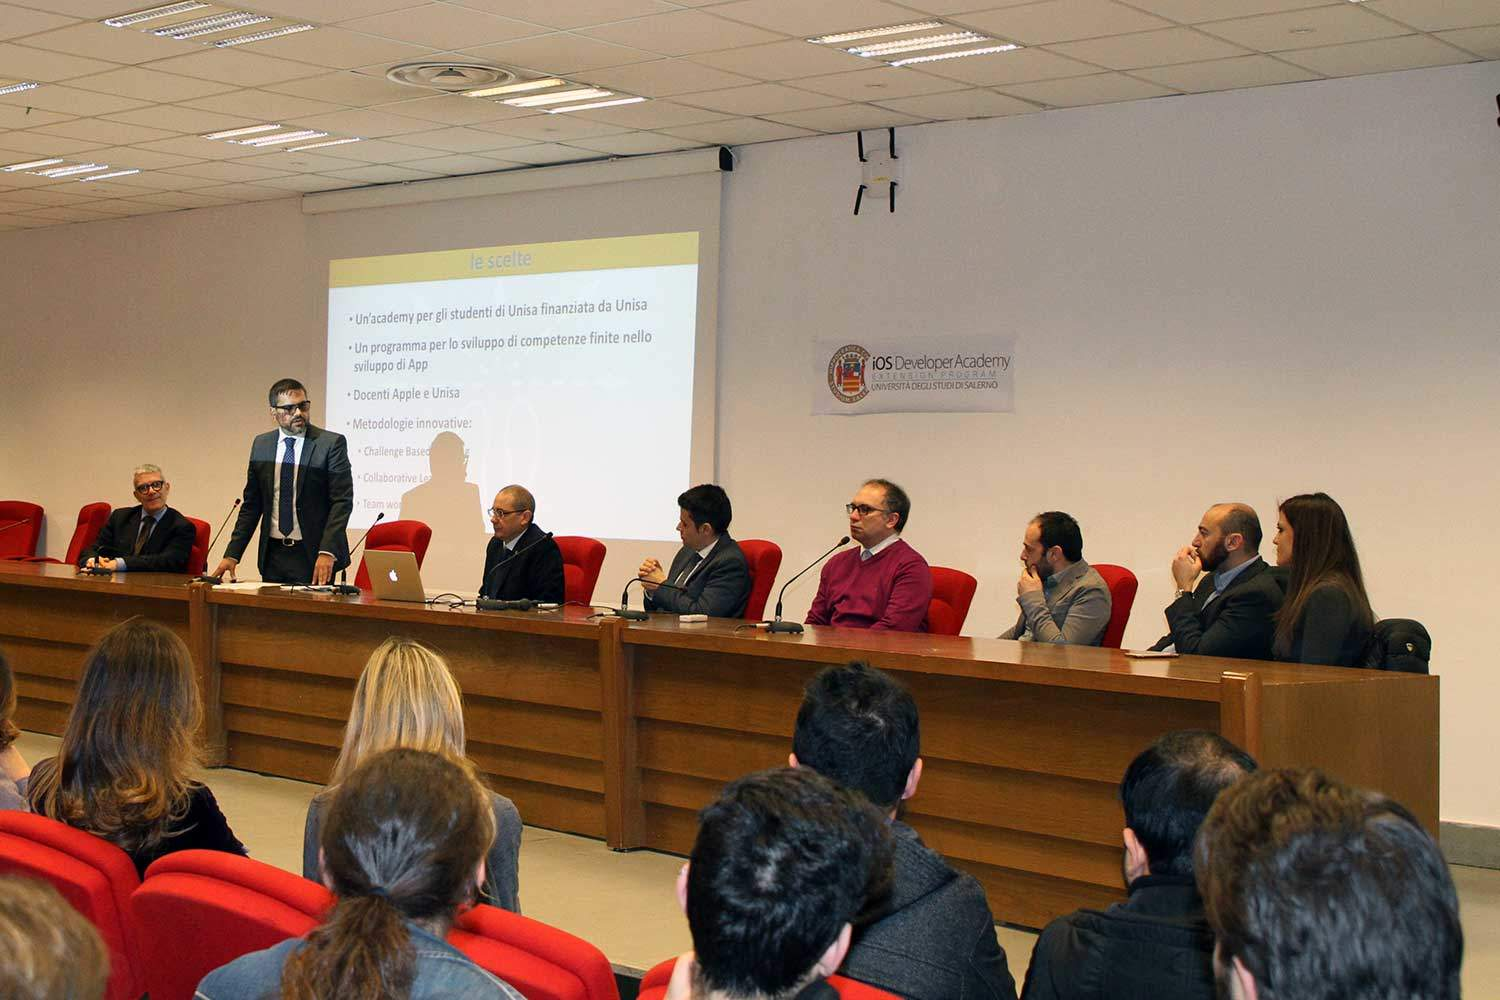 Inaugurata la Apple iOS Academy presso l'Università di Salerno